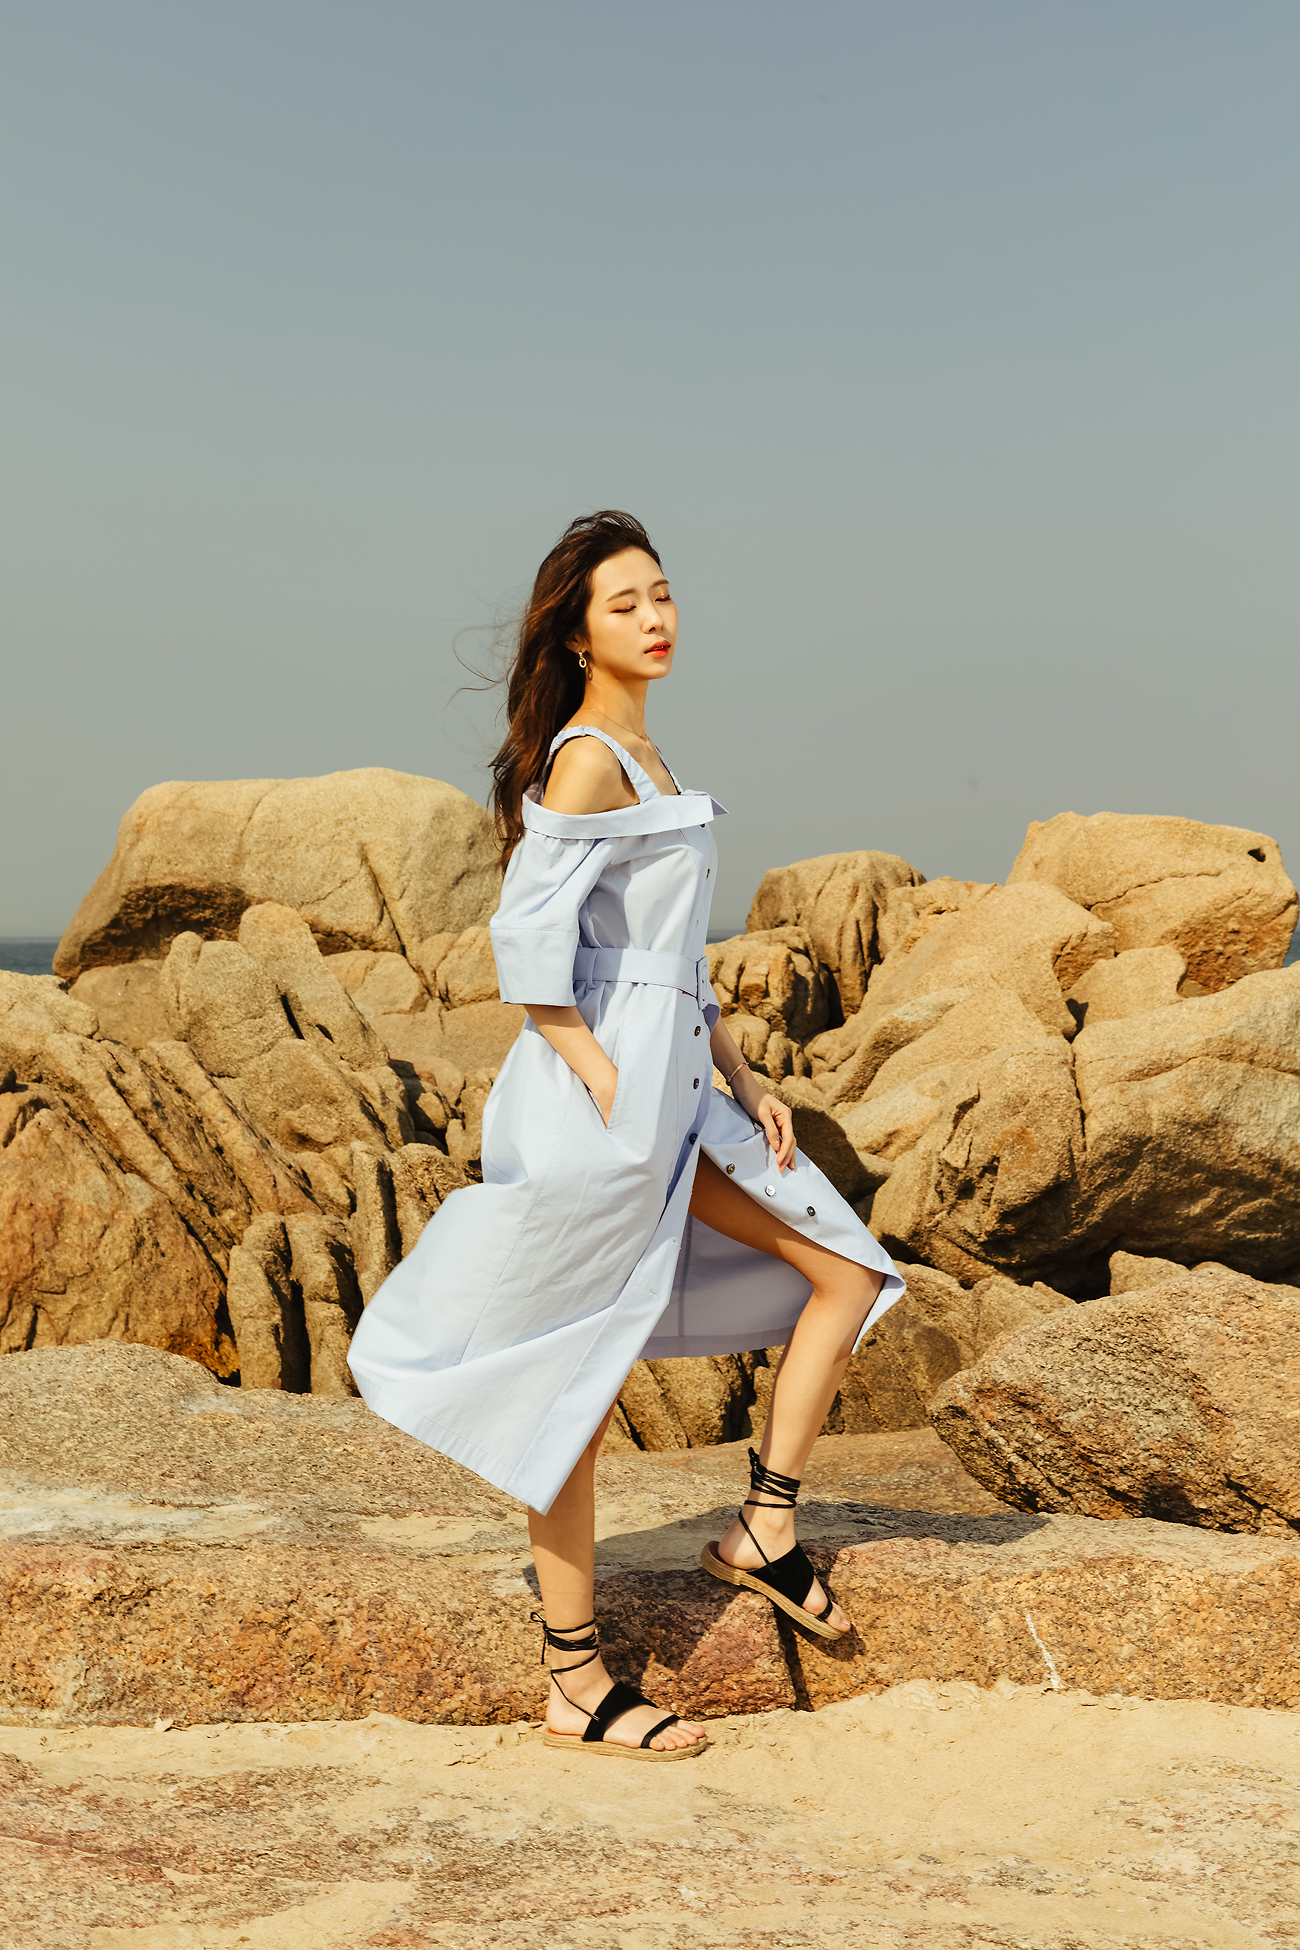 A leisurely summer vacation Editorial